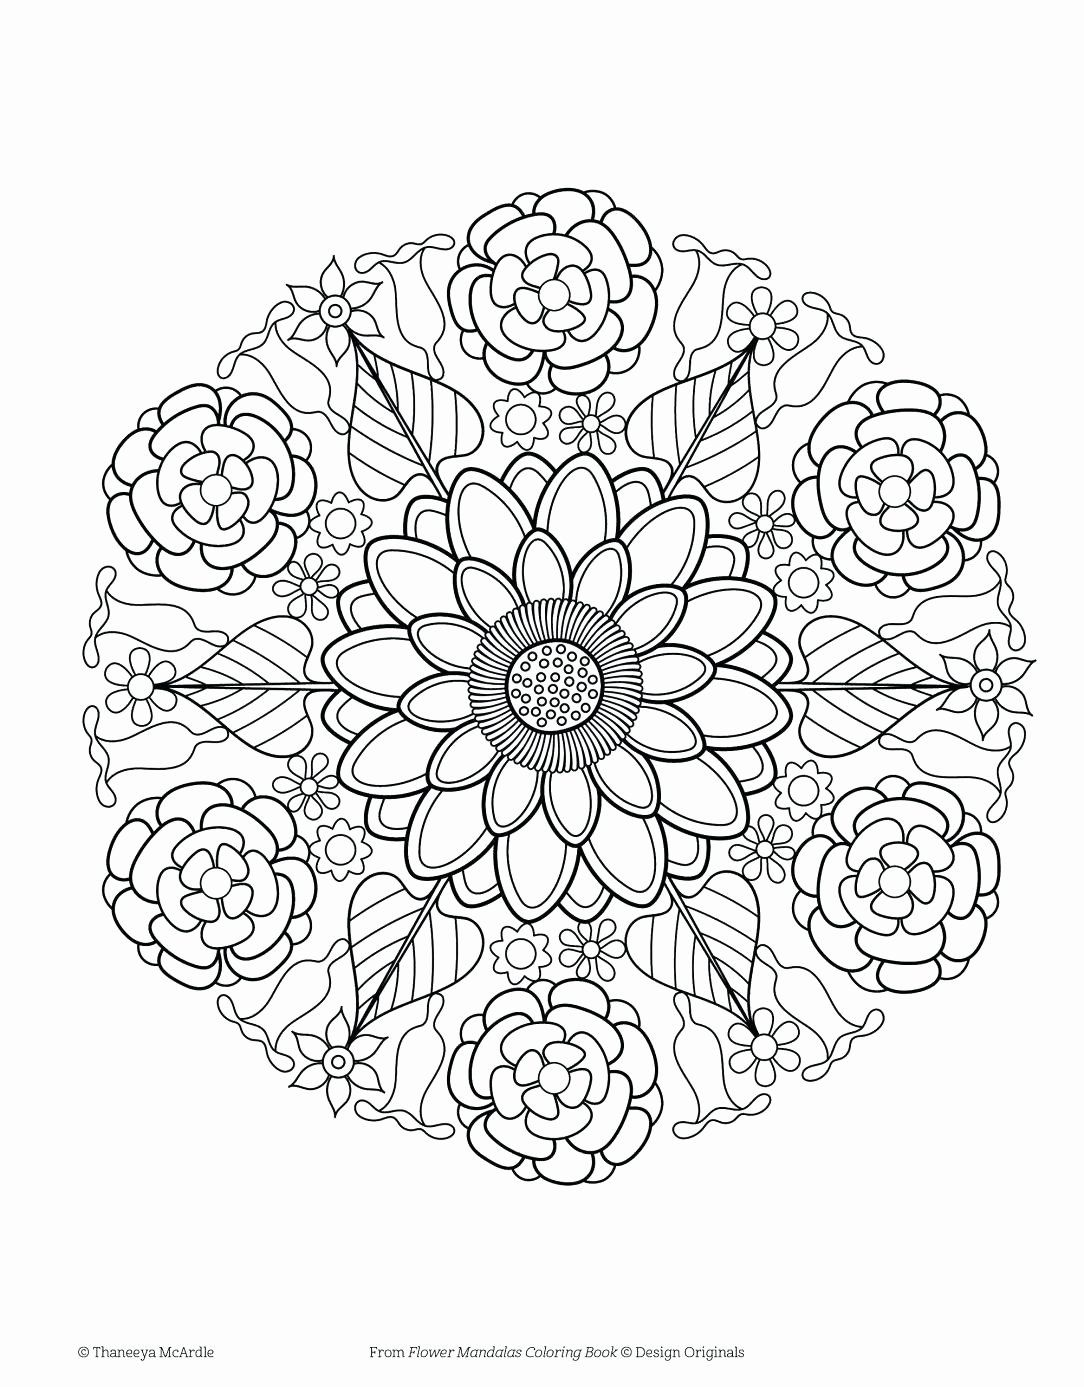 coloring pages : Online Coloring For Adults Mandalas Luxury ... | 1387x1084